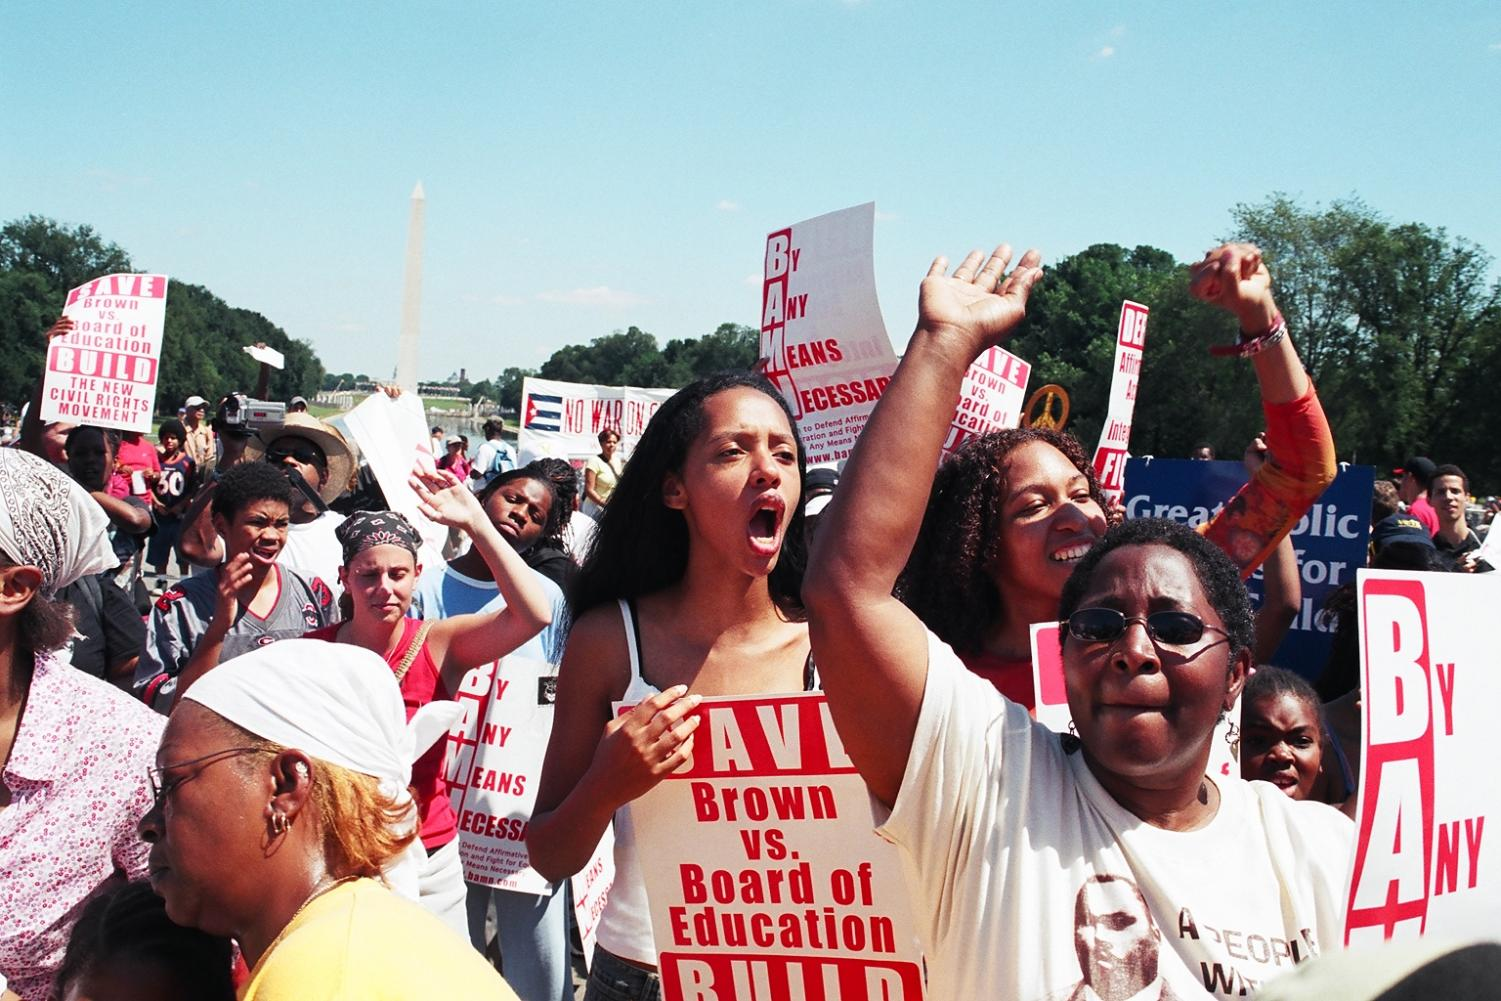 Protesters fight for affirmative action by demanding equality in employment and admissions